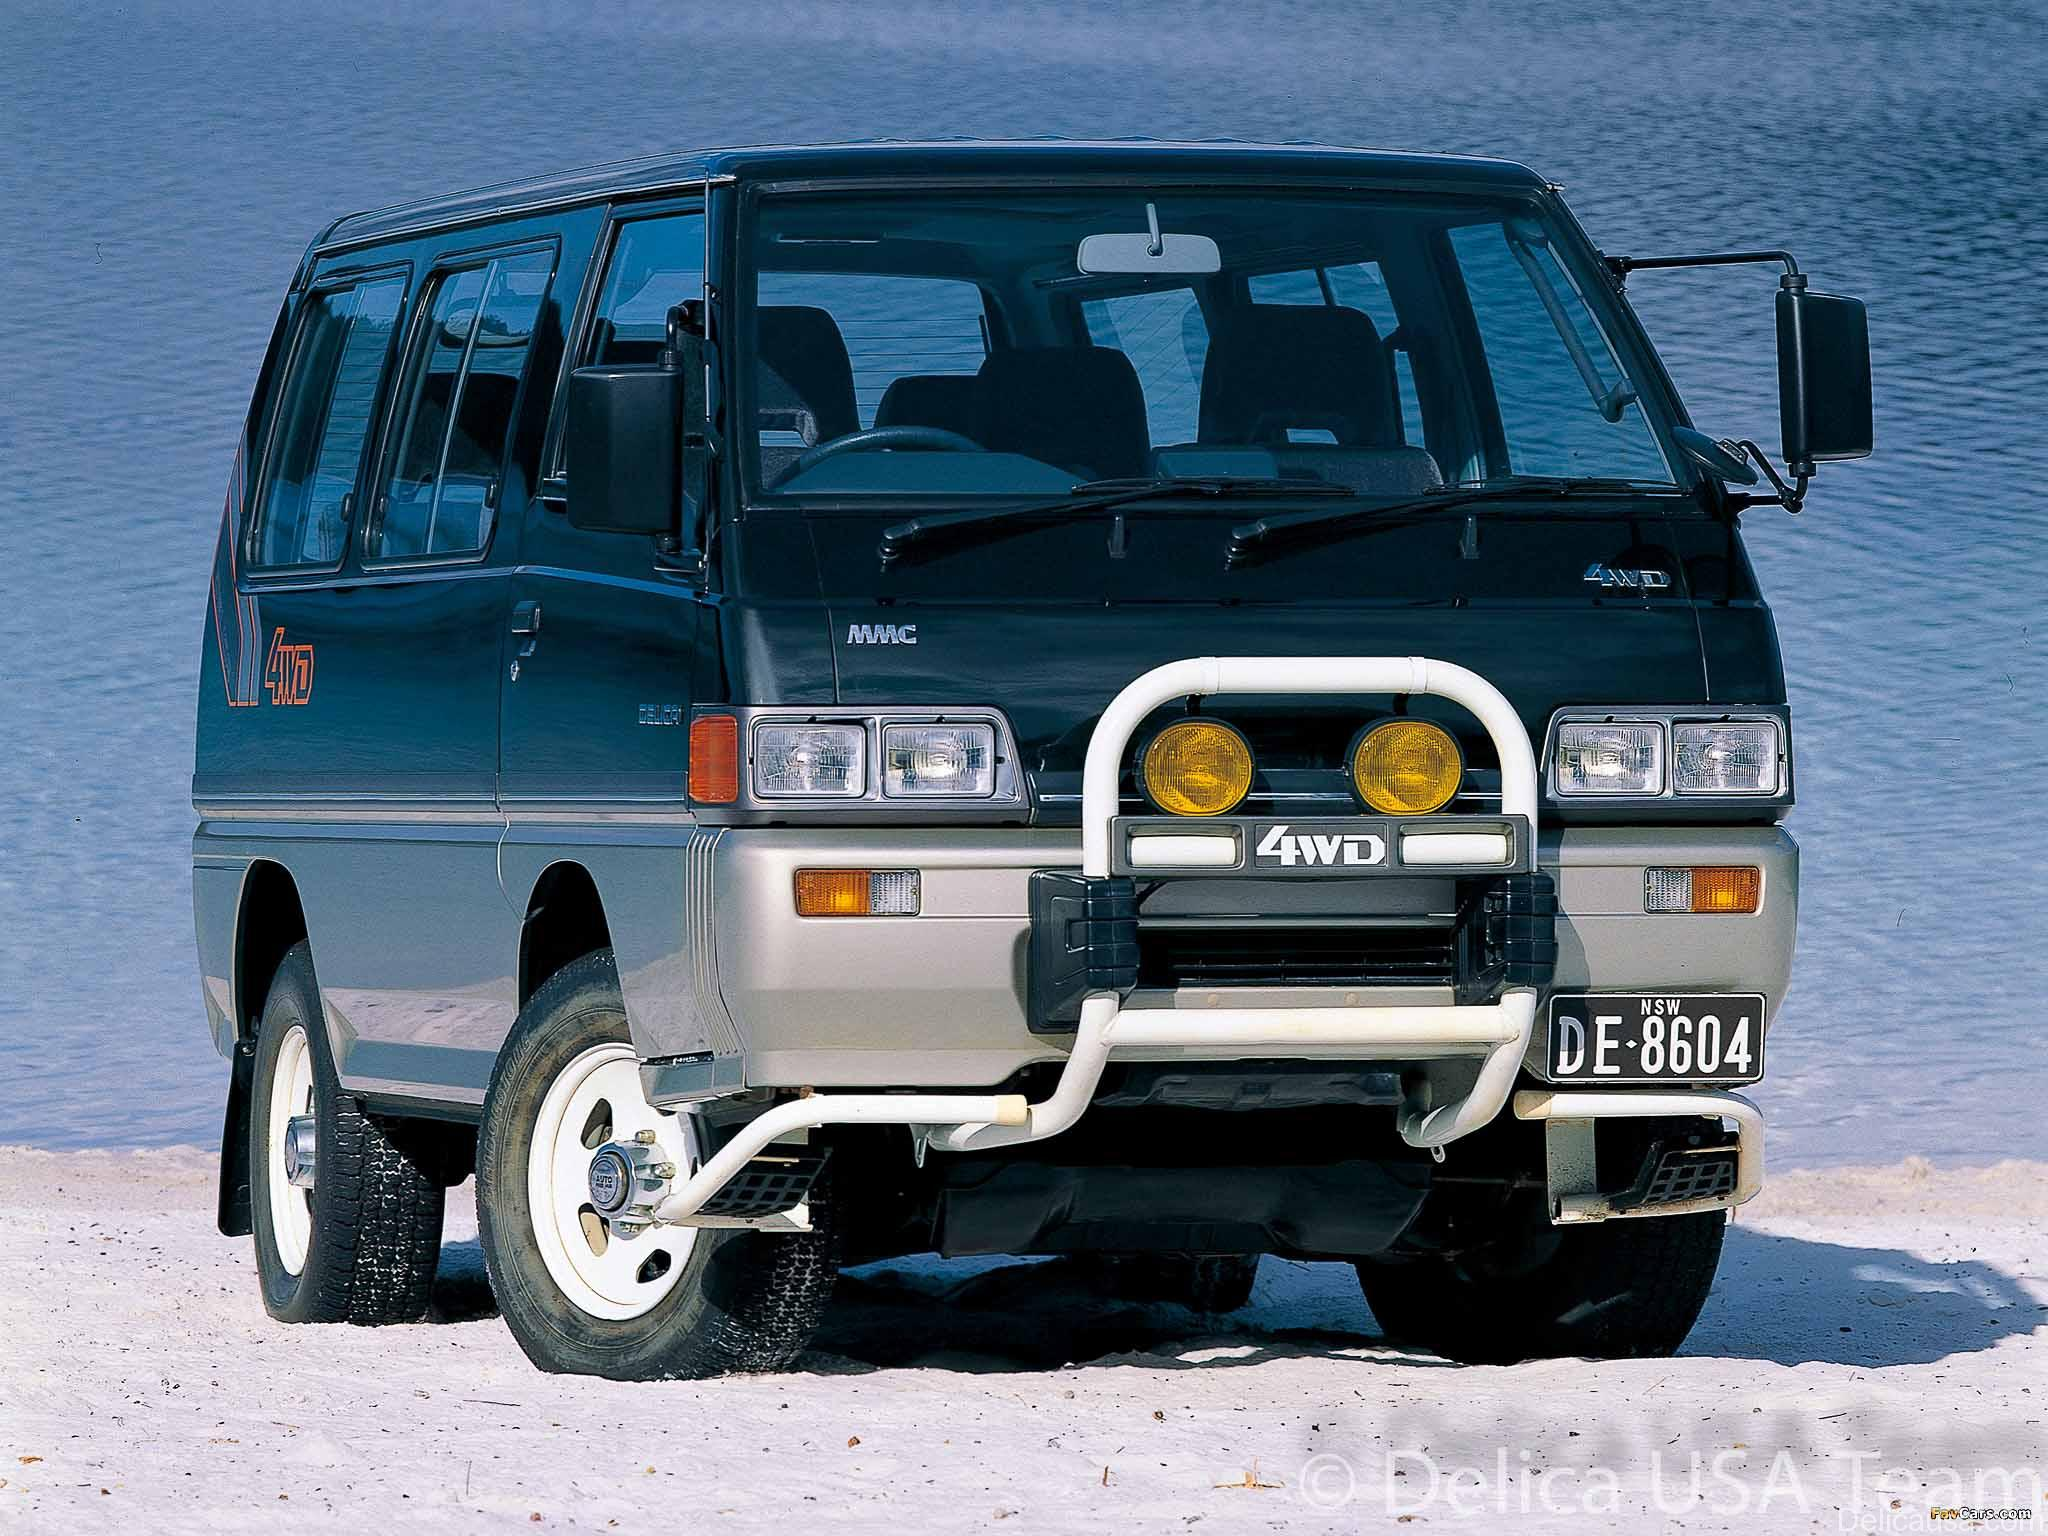 c5fcd9661a Delica Star Wagon is one of the most popular vehicle among explorers all  around the world.